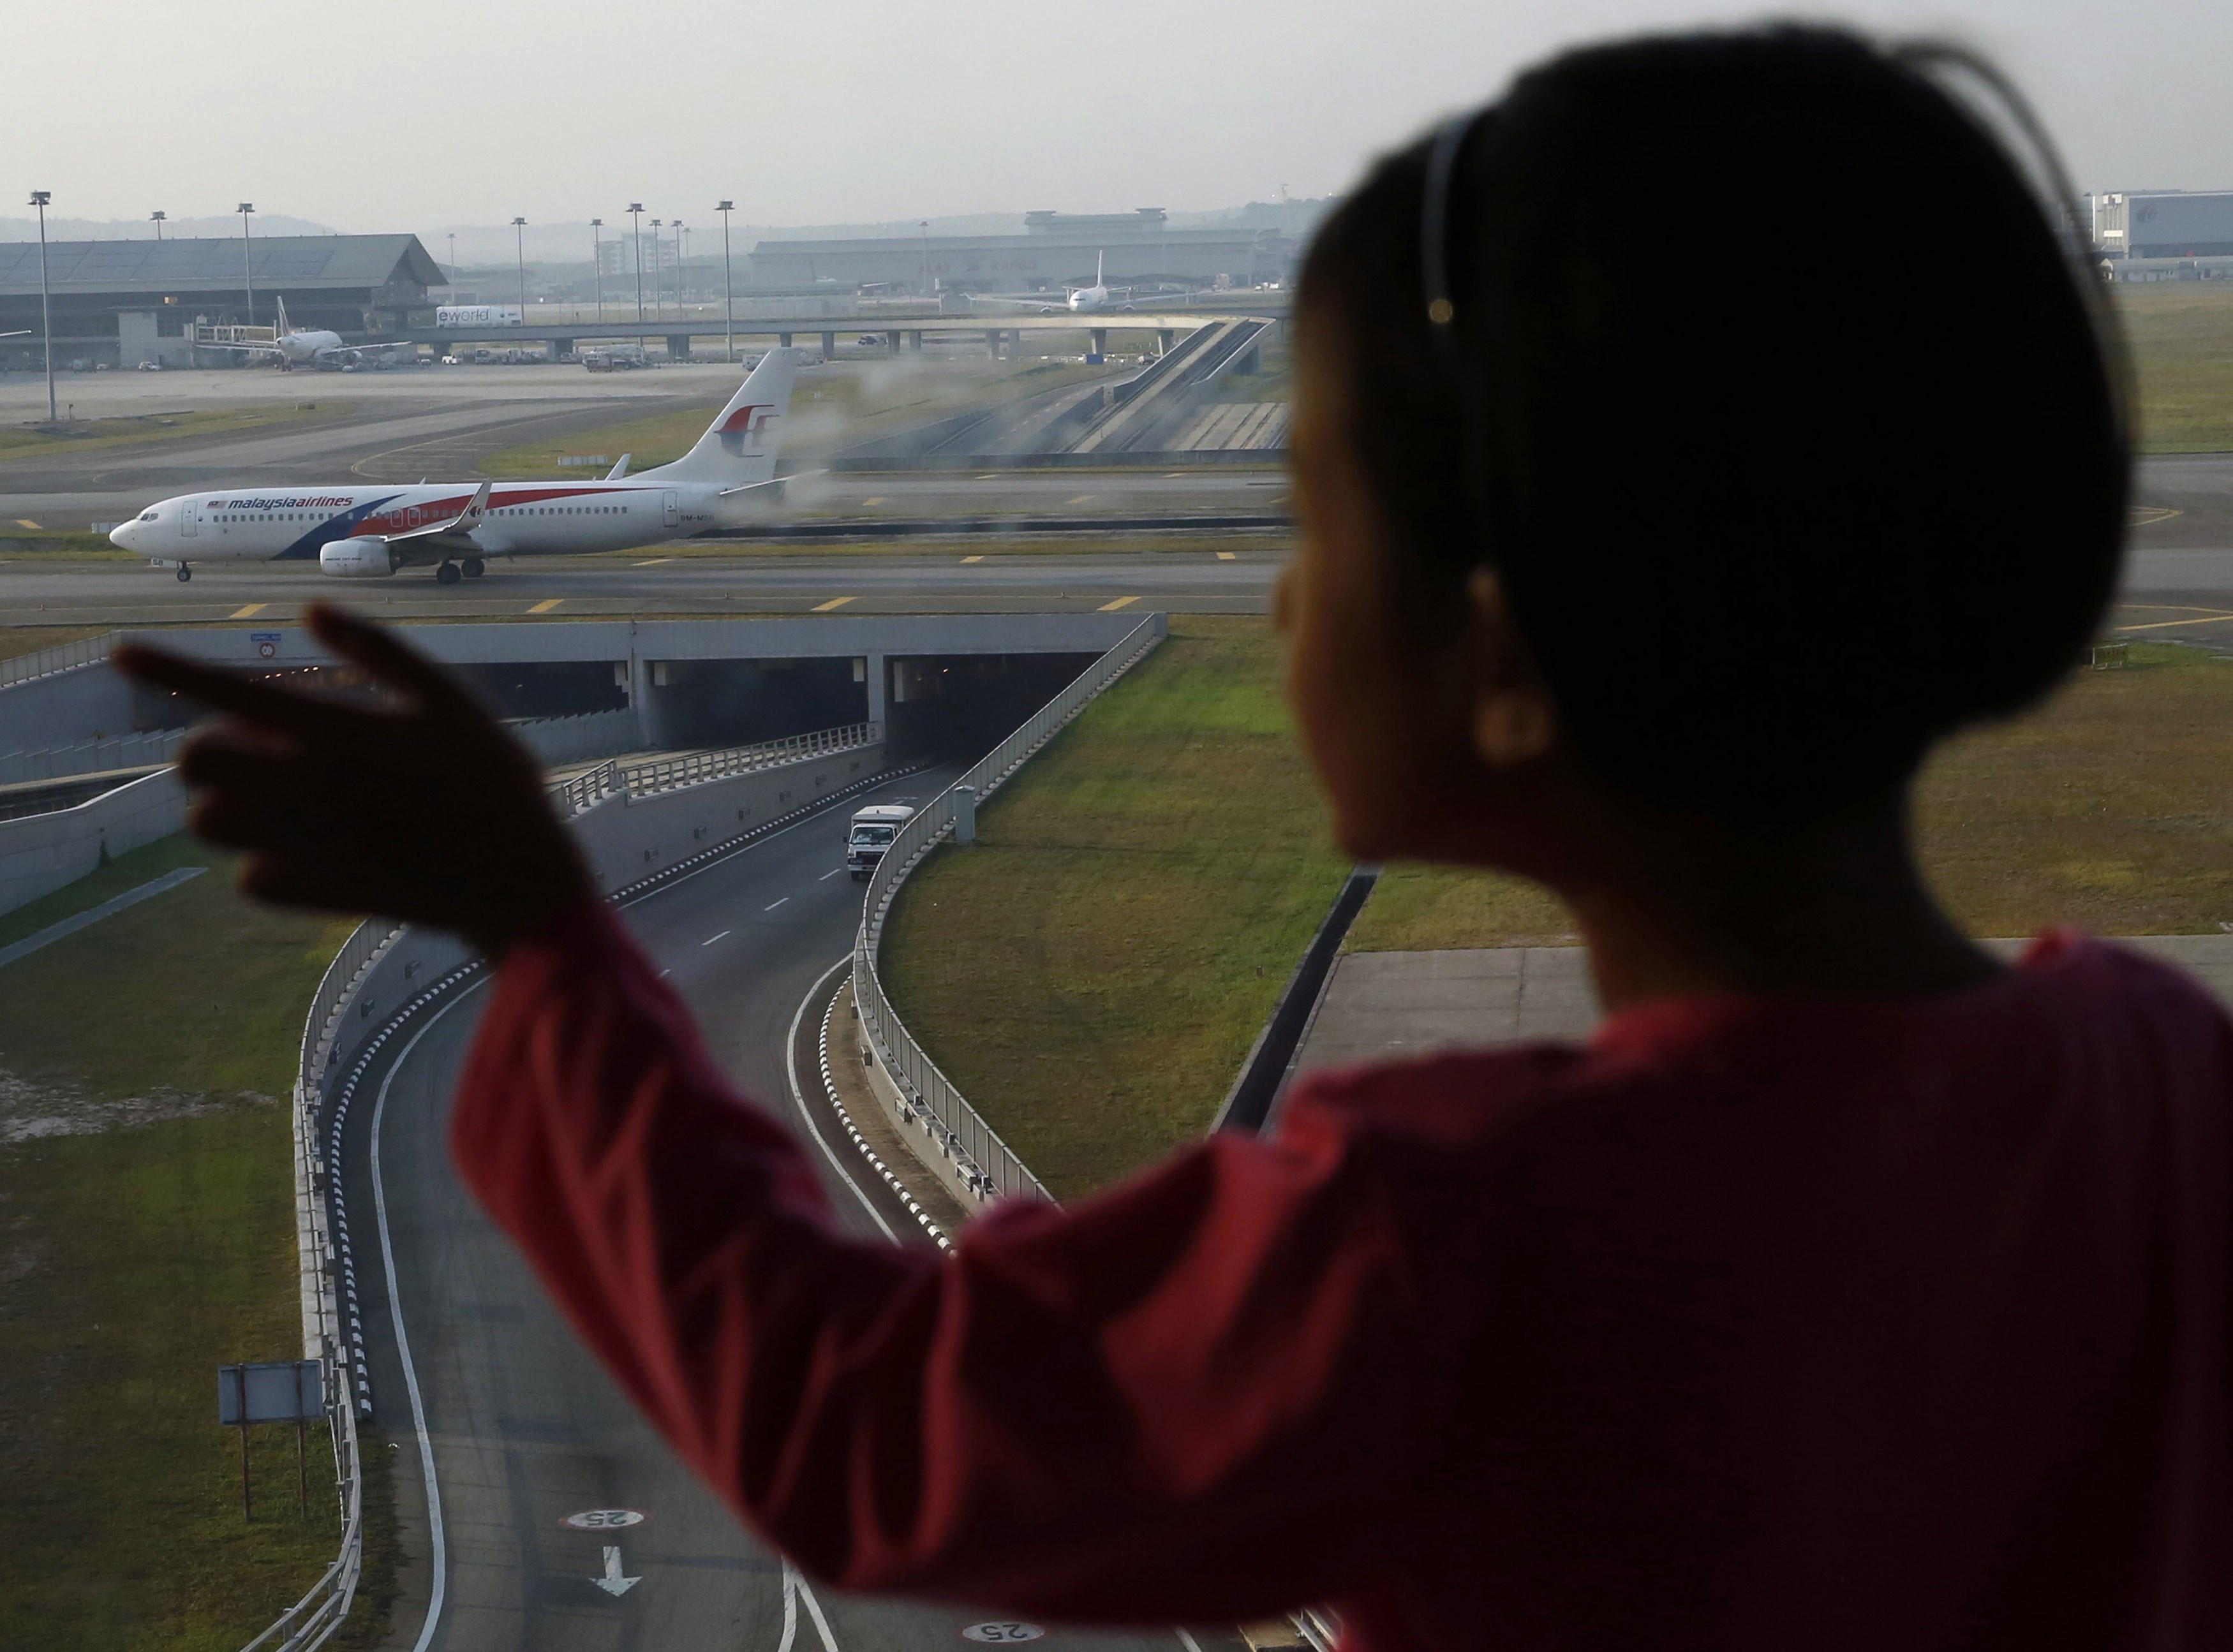 Malaysia Airlines posts Q2 net loss of $98 mln